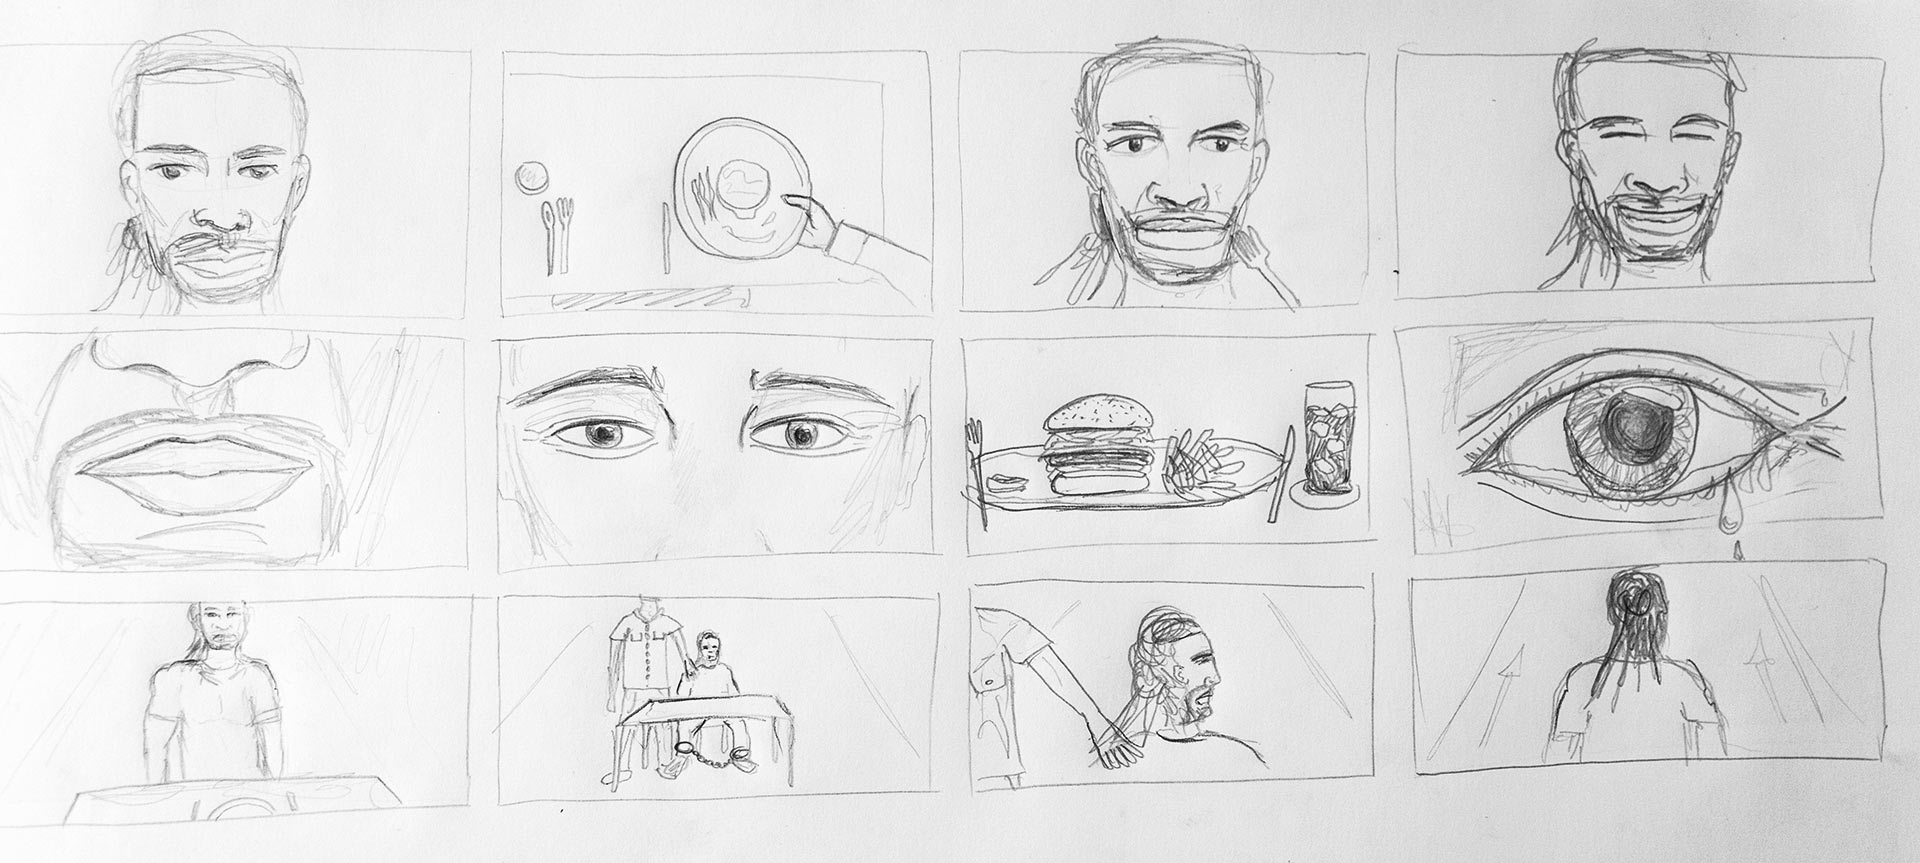 A storyboard sketch showing some of my envisioned shots.